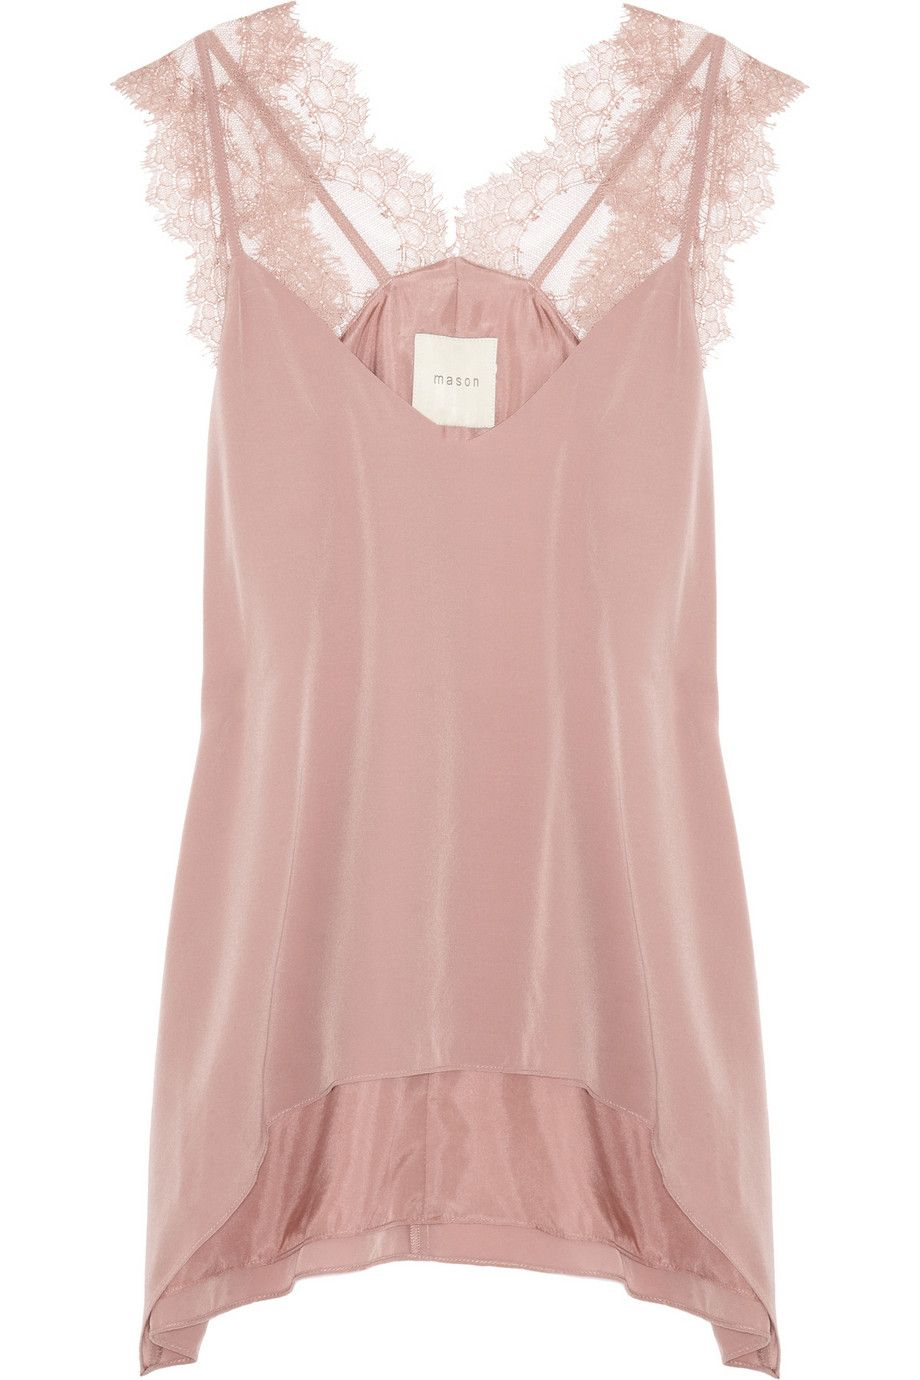 Mason by Michelle Mason|Lace and washed-silk camisole|NET-A-PORTER.COM  Might work well for Colour Summer-Types!